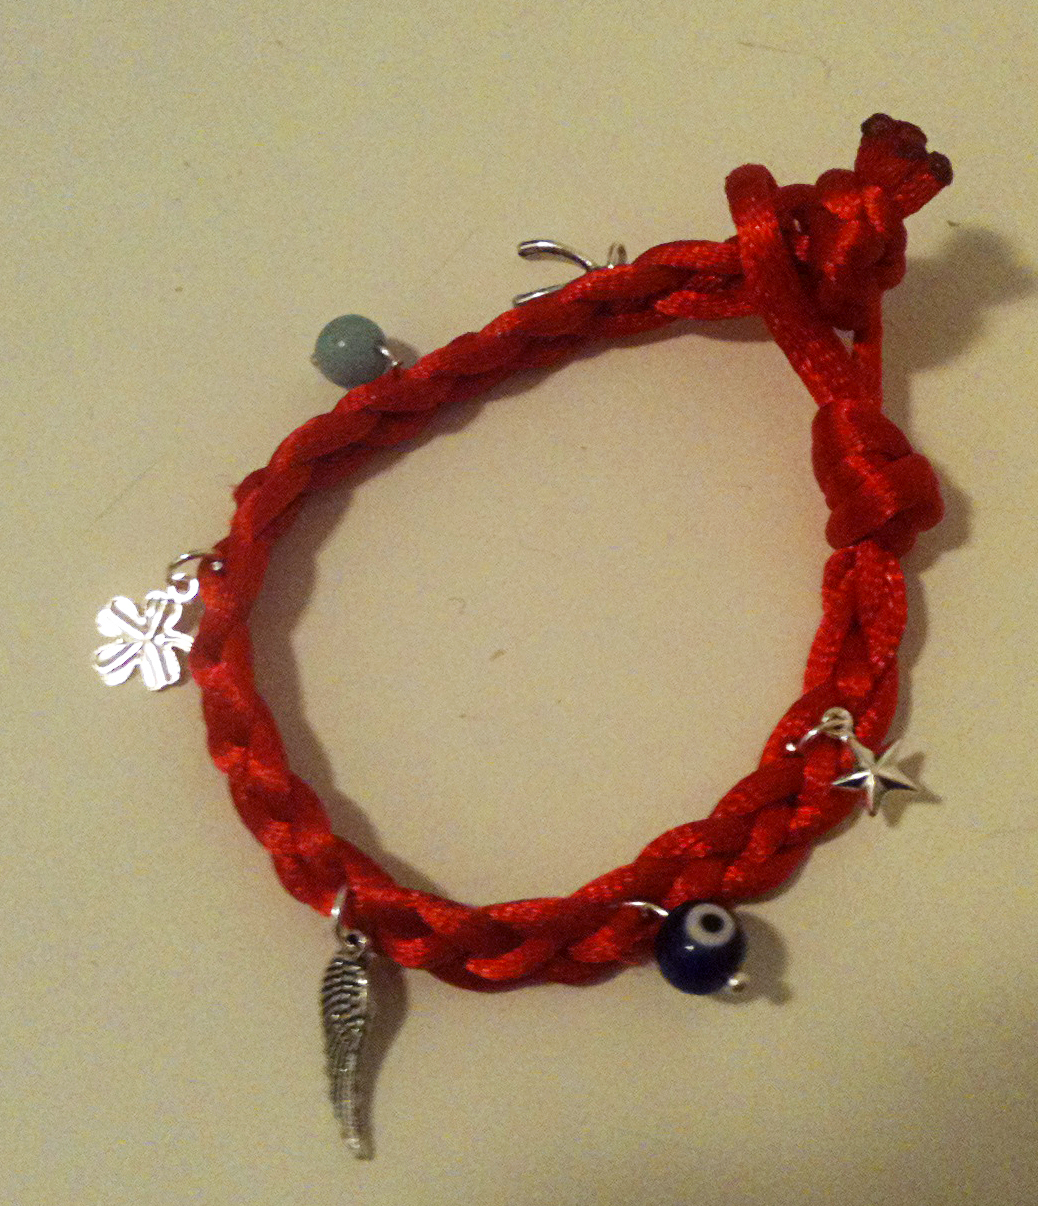 Red String Good Luck Charm Bracelet Giveaway